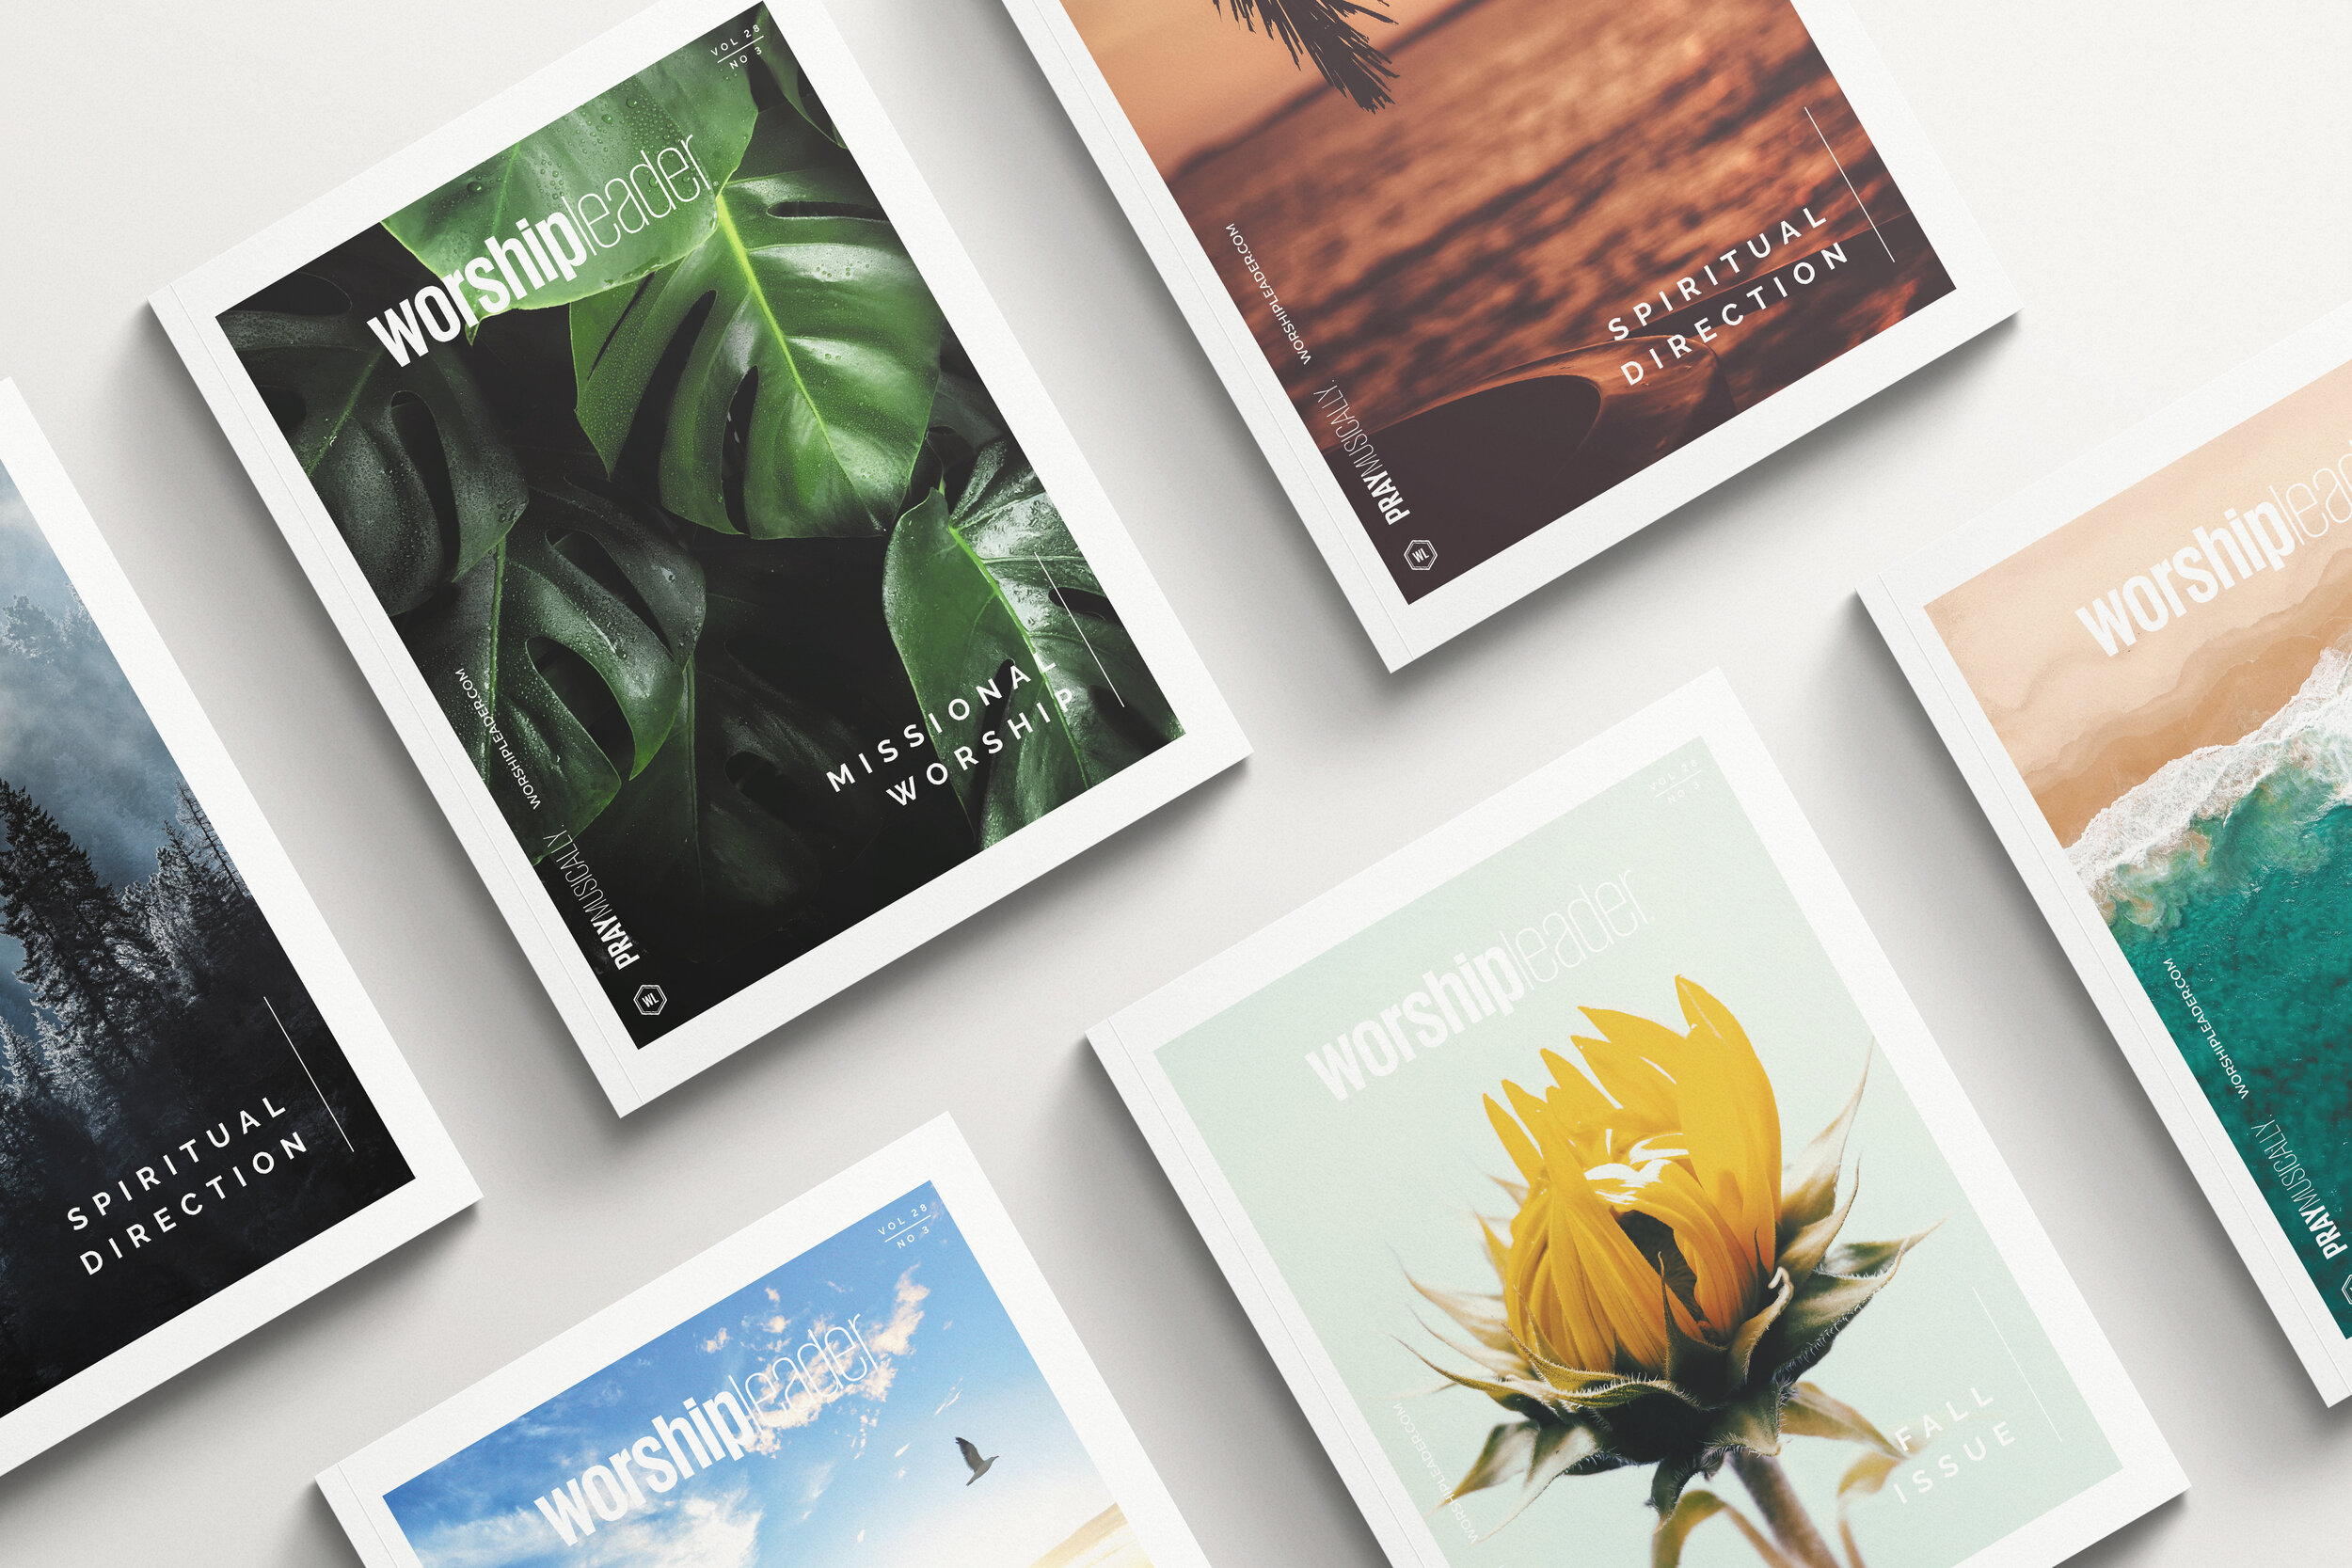 IT ALL STARTED WHEN… - It all started back in 1992 when the first edition of Worship Leader Magazine was first published. Since then we've grown and found new ways to ensure that what we're doing is accessible for all Worship teams.